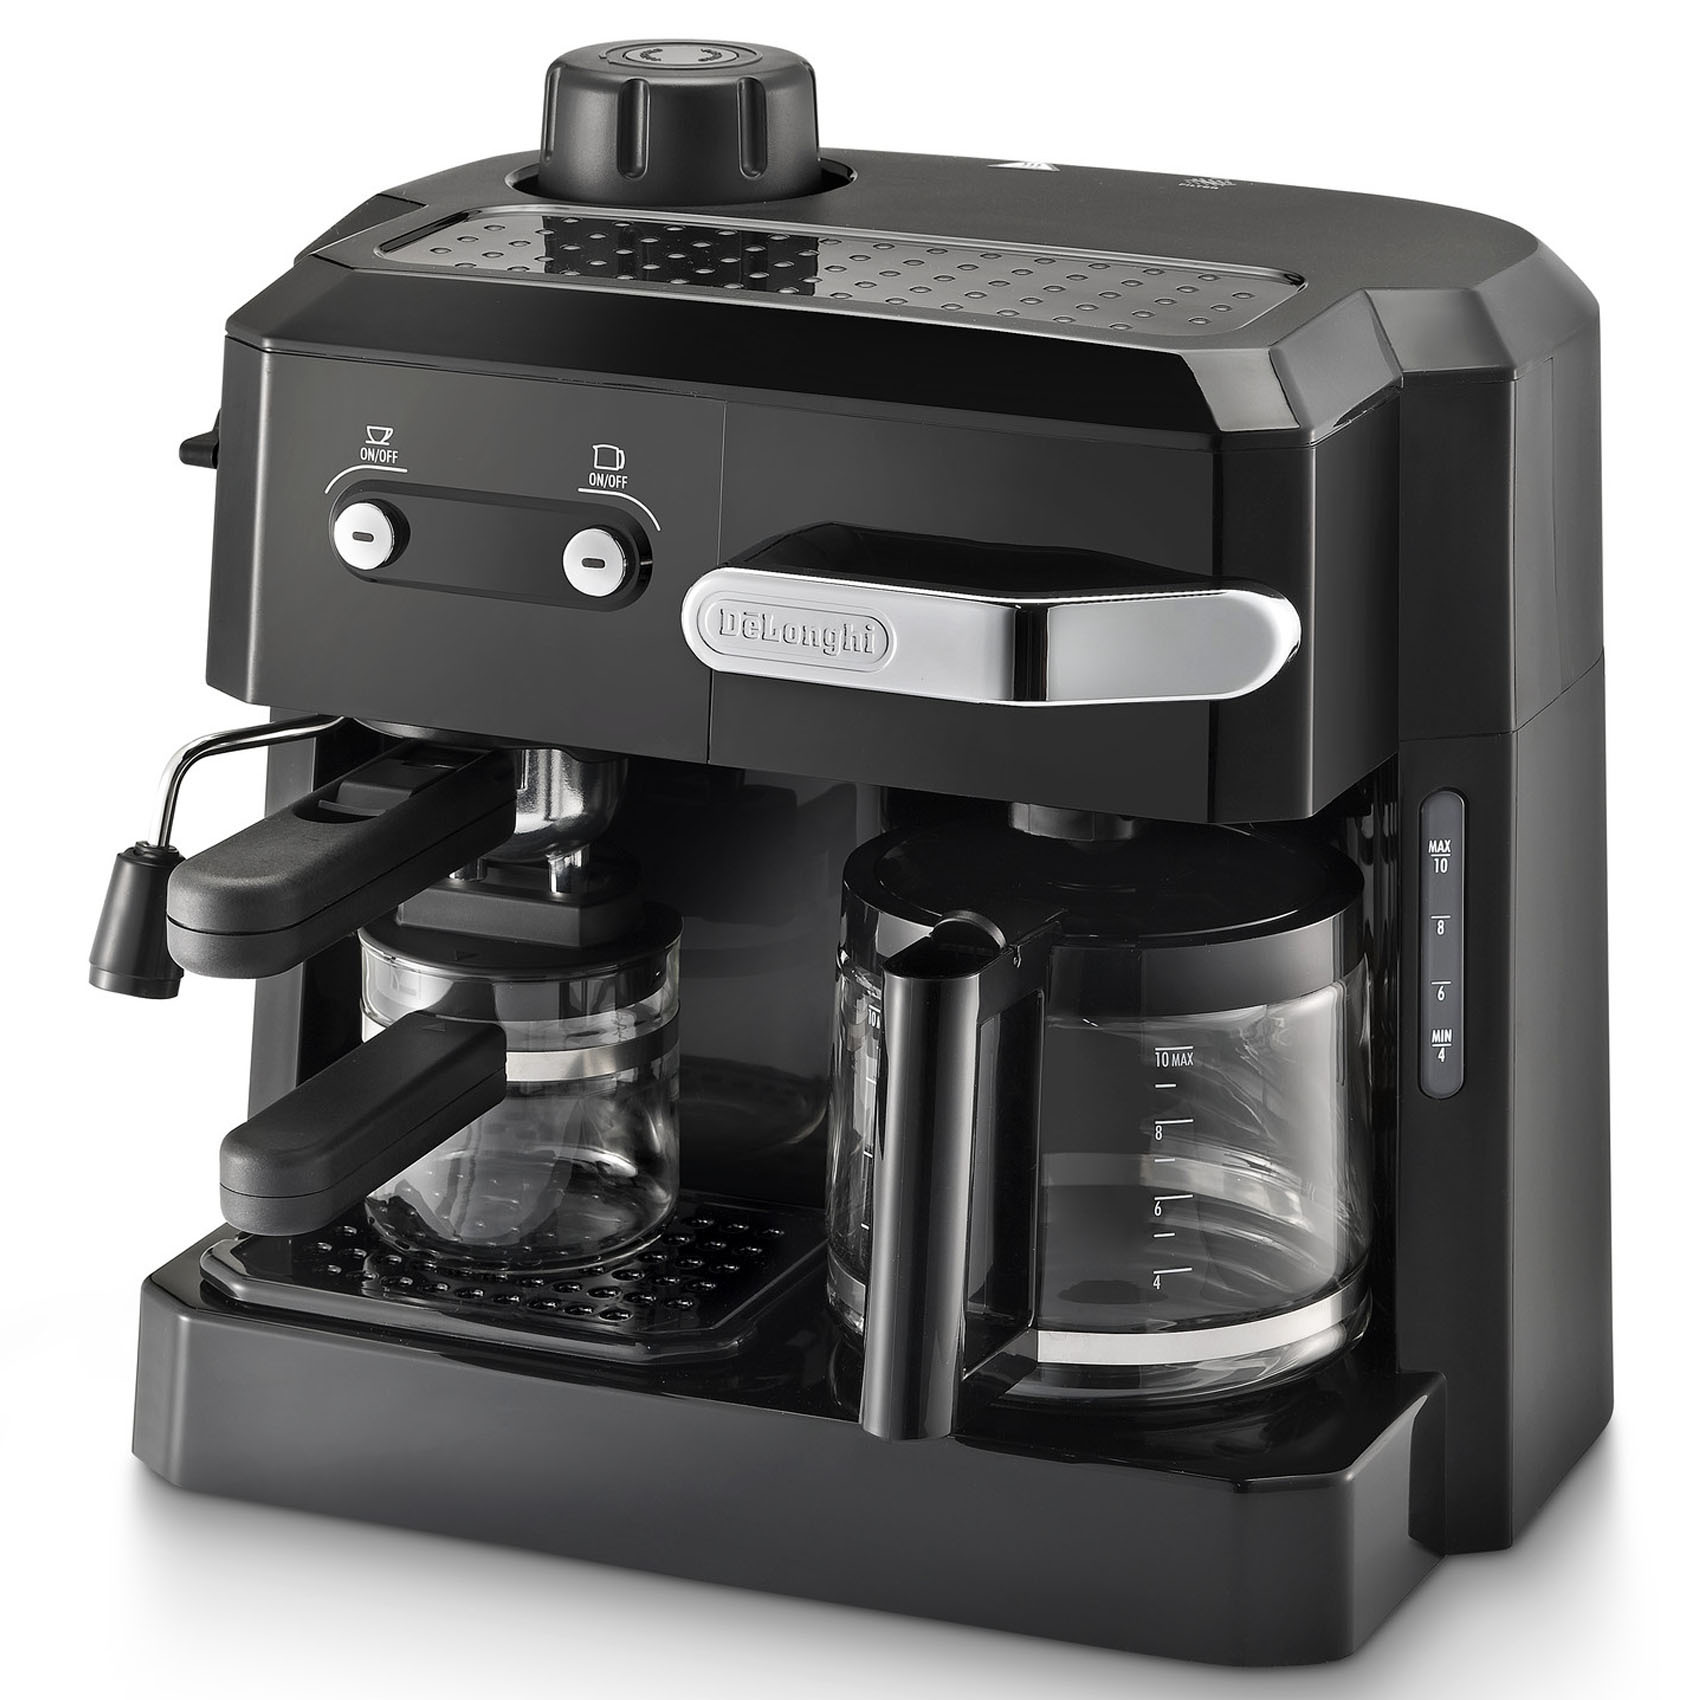 Delonghi Large Capacity Coffee Maker Best Icm 14011w Espresso Bco320 In Uae Carrefour